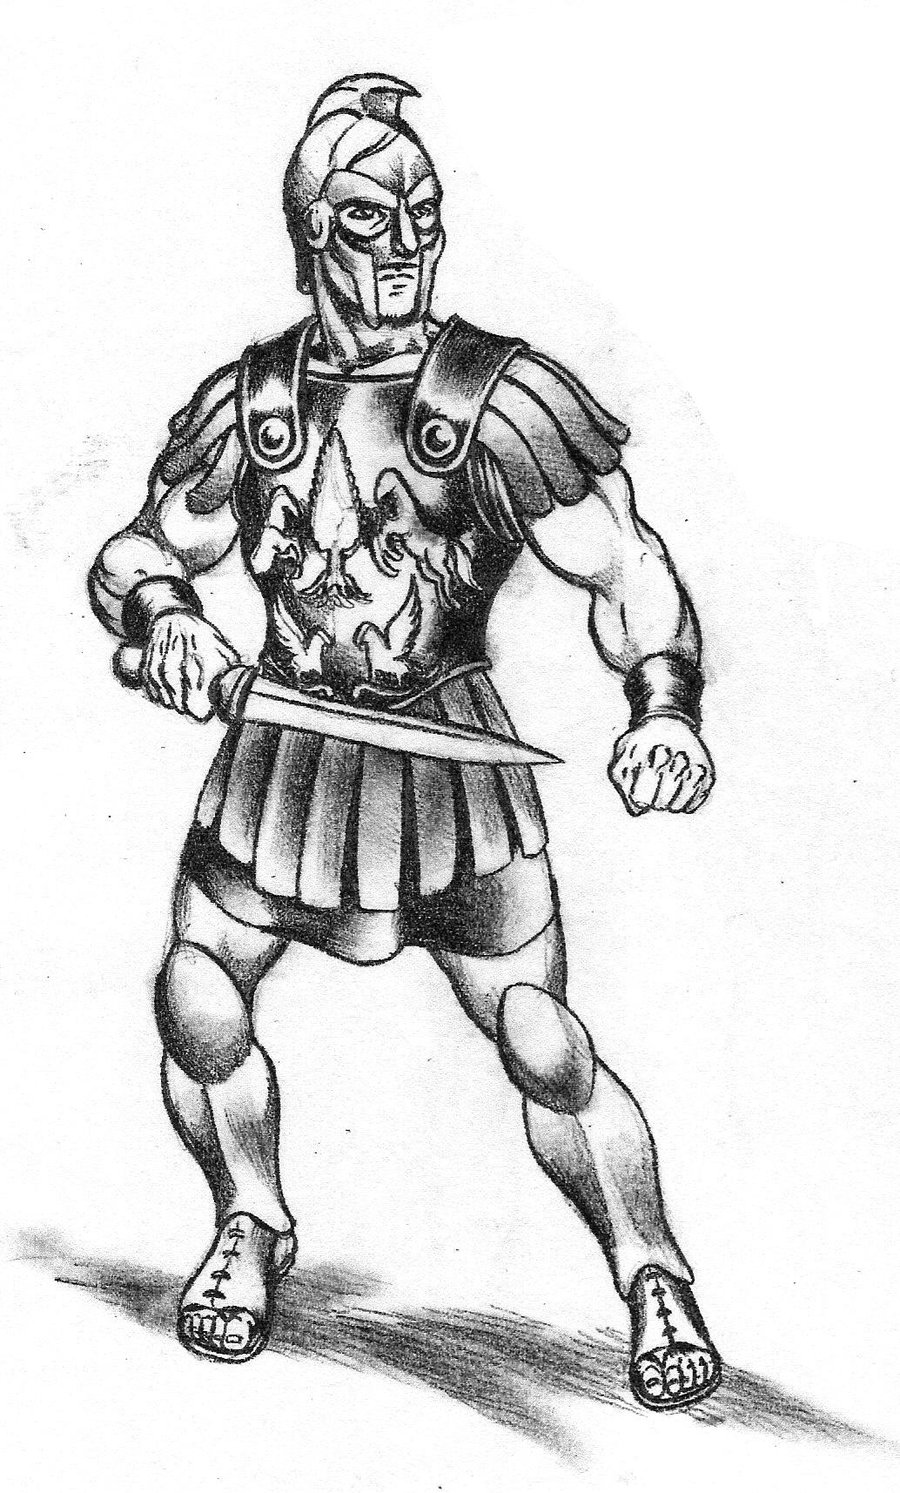 Drawn warrior gladiator Gladiator Quality Gladiator High Drawing